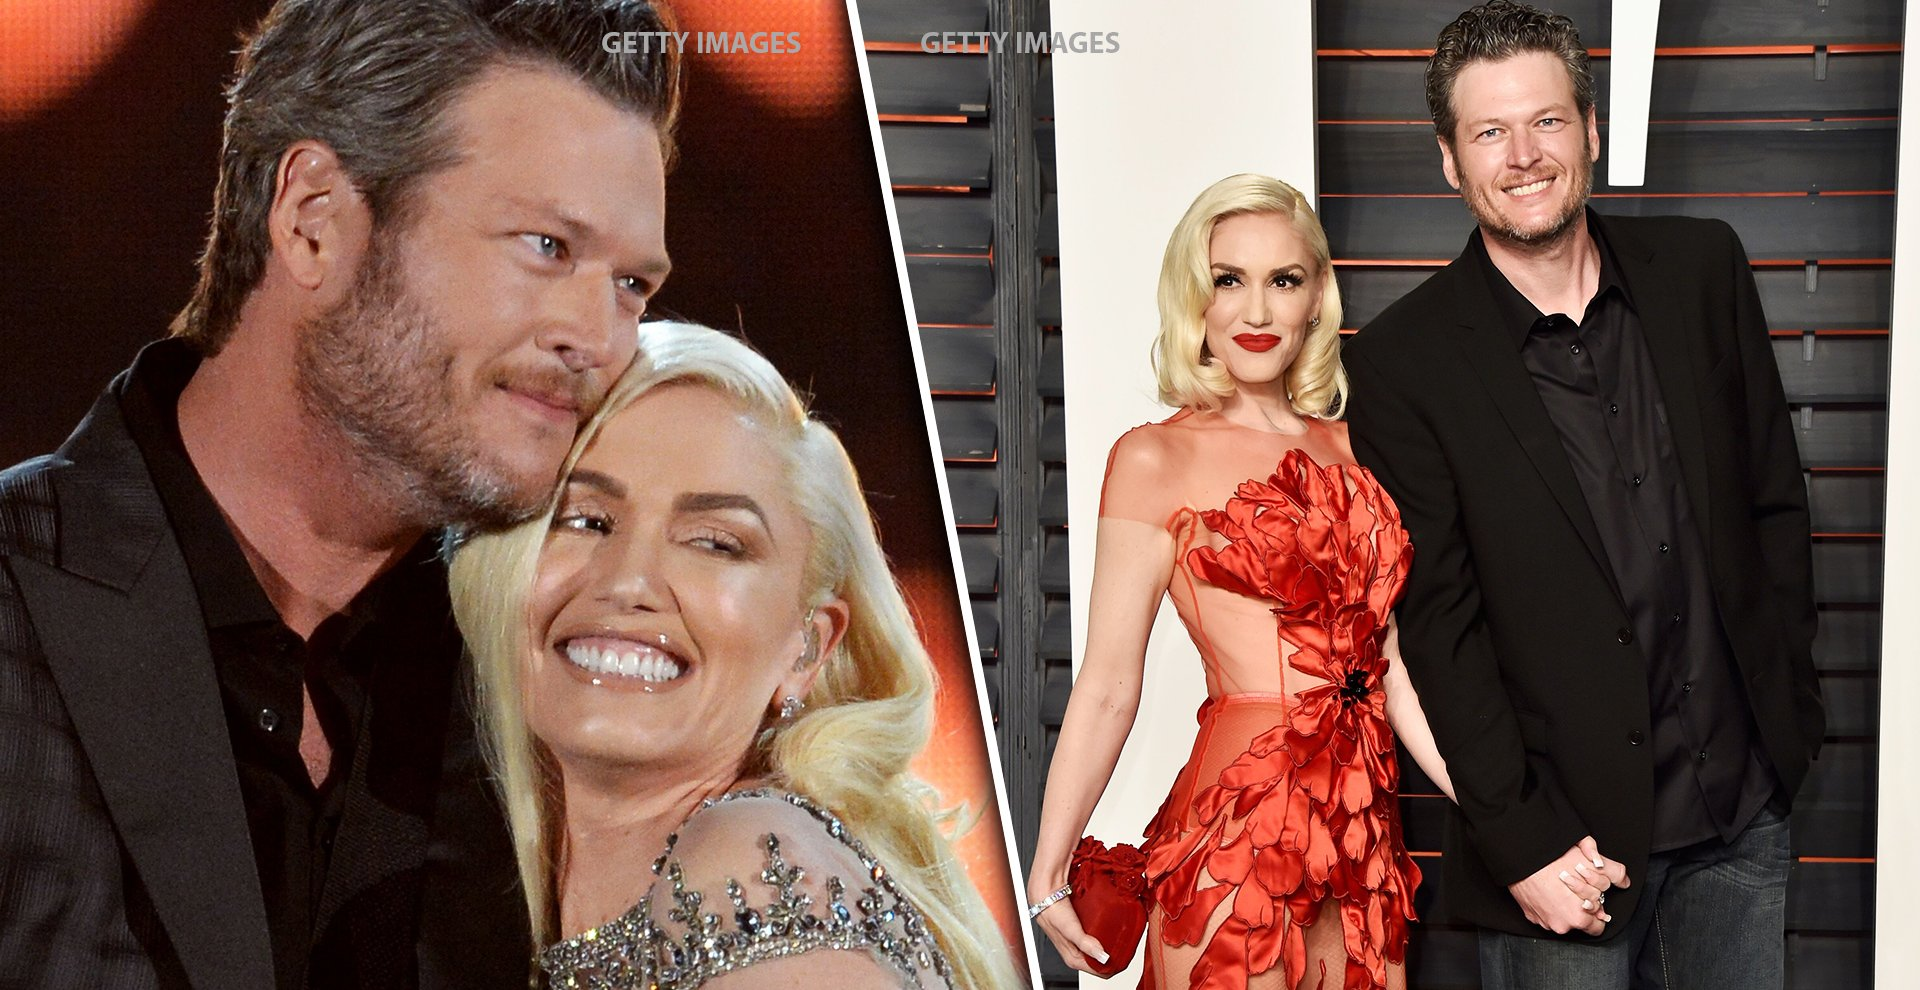 Blake Shelton and Gwen Stefani: The Story of Salvage